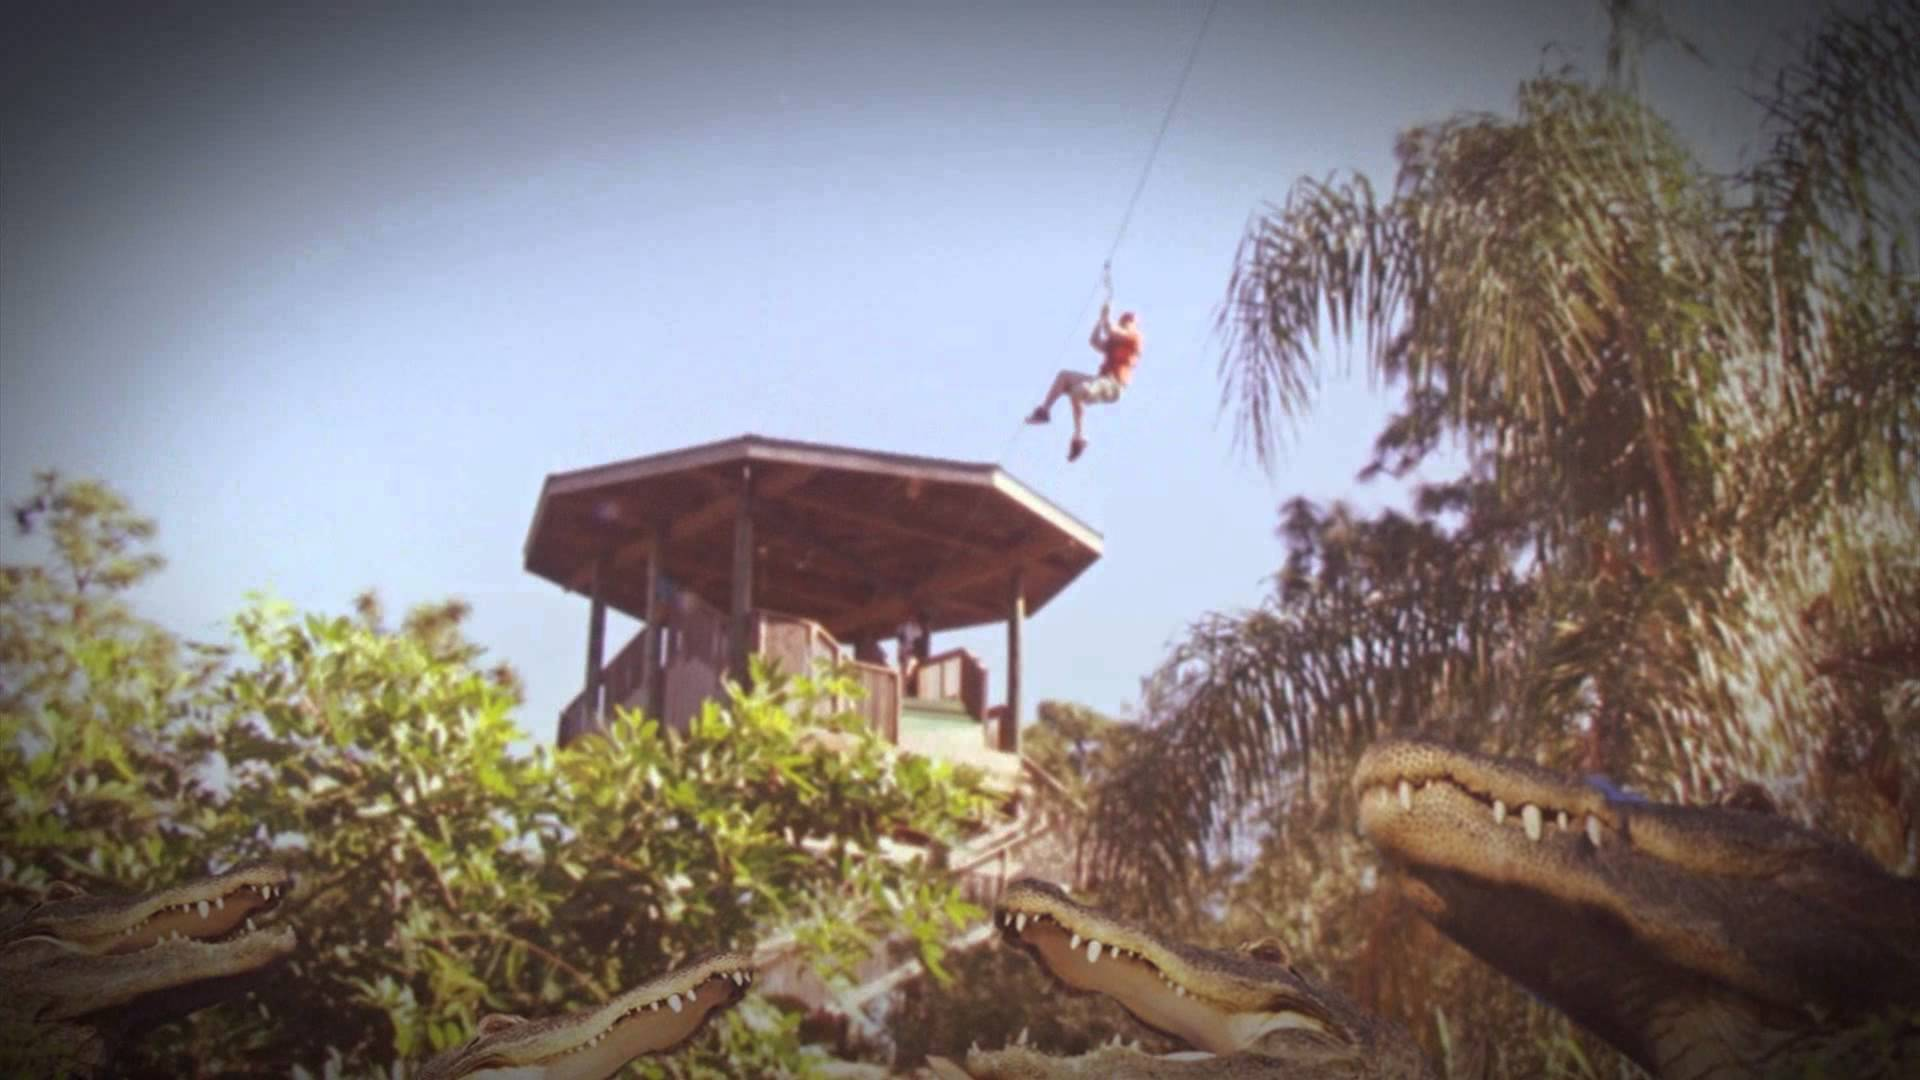 Screamin Gator Zipline 2014